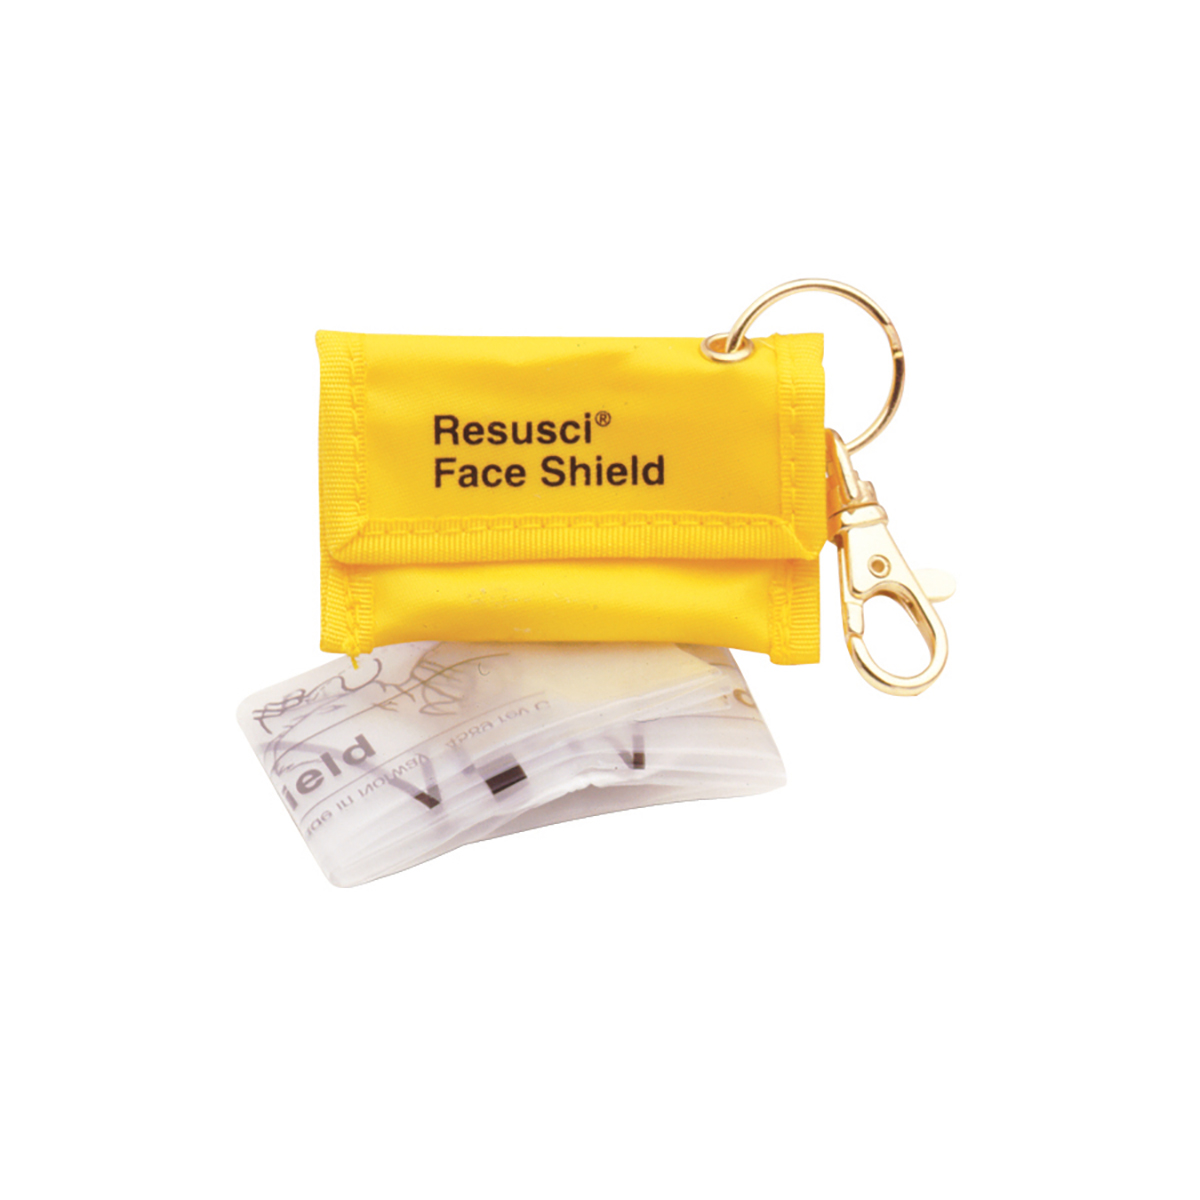 Resusci® Face Shield Keyring